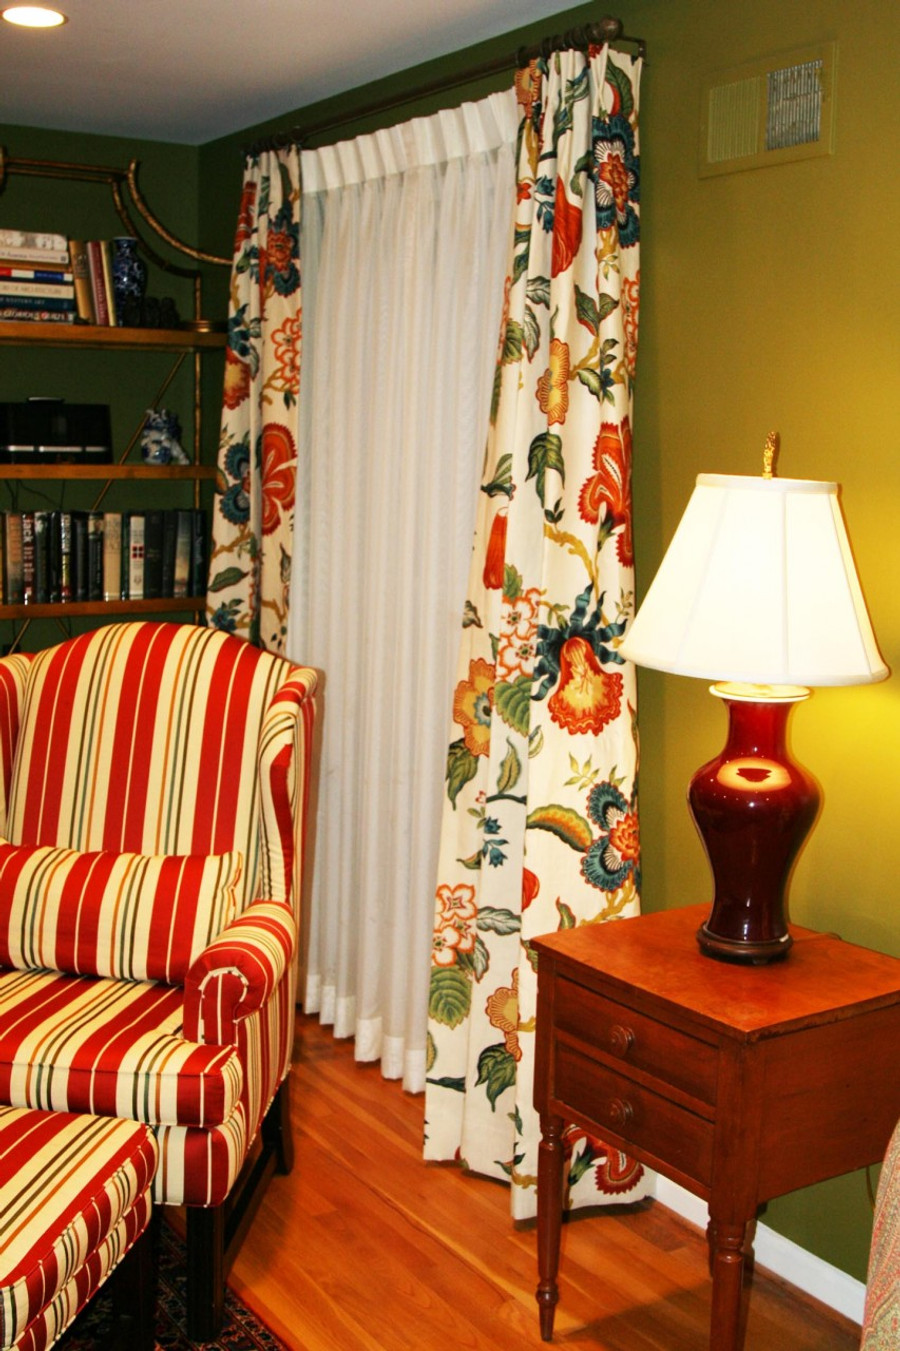 Custom Drapes by Lynn Chalk in Celerie Kemble Hothouse Flowers Spark installed in client's house